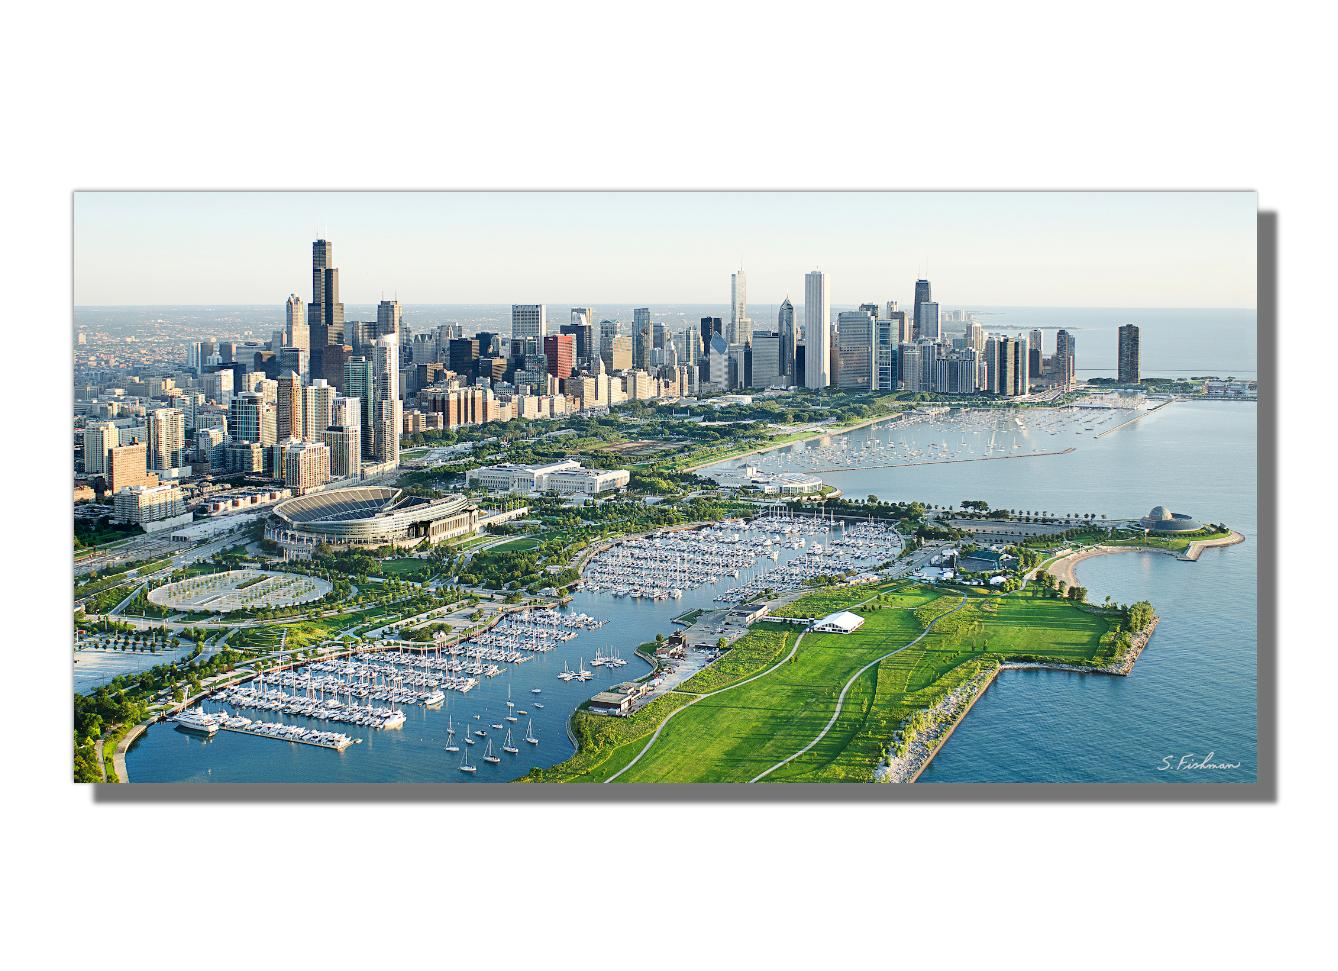 Chicago Skyline, Soldier Field, Lakefront Aerial, Giclee on Metal by Scott F.